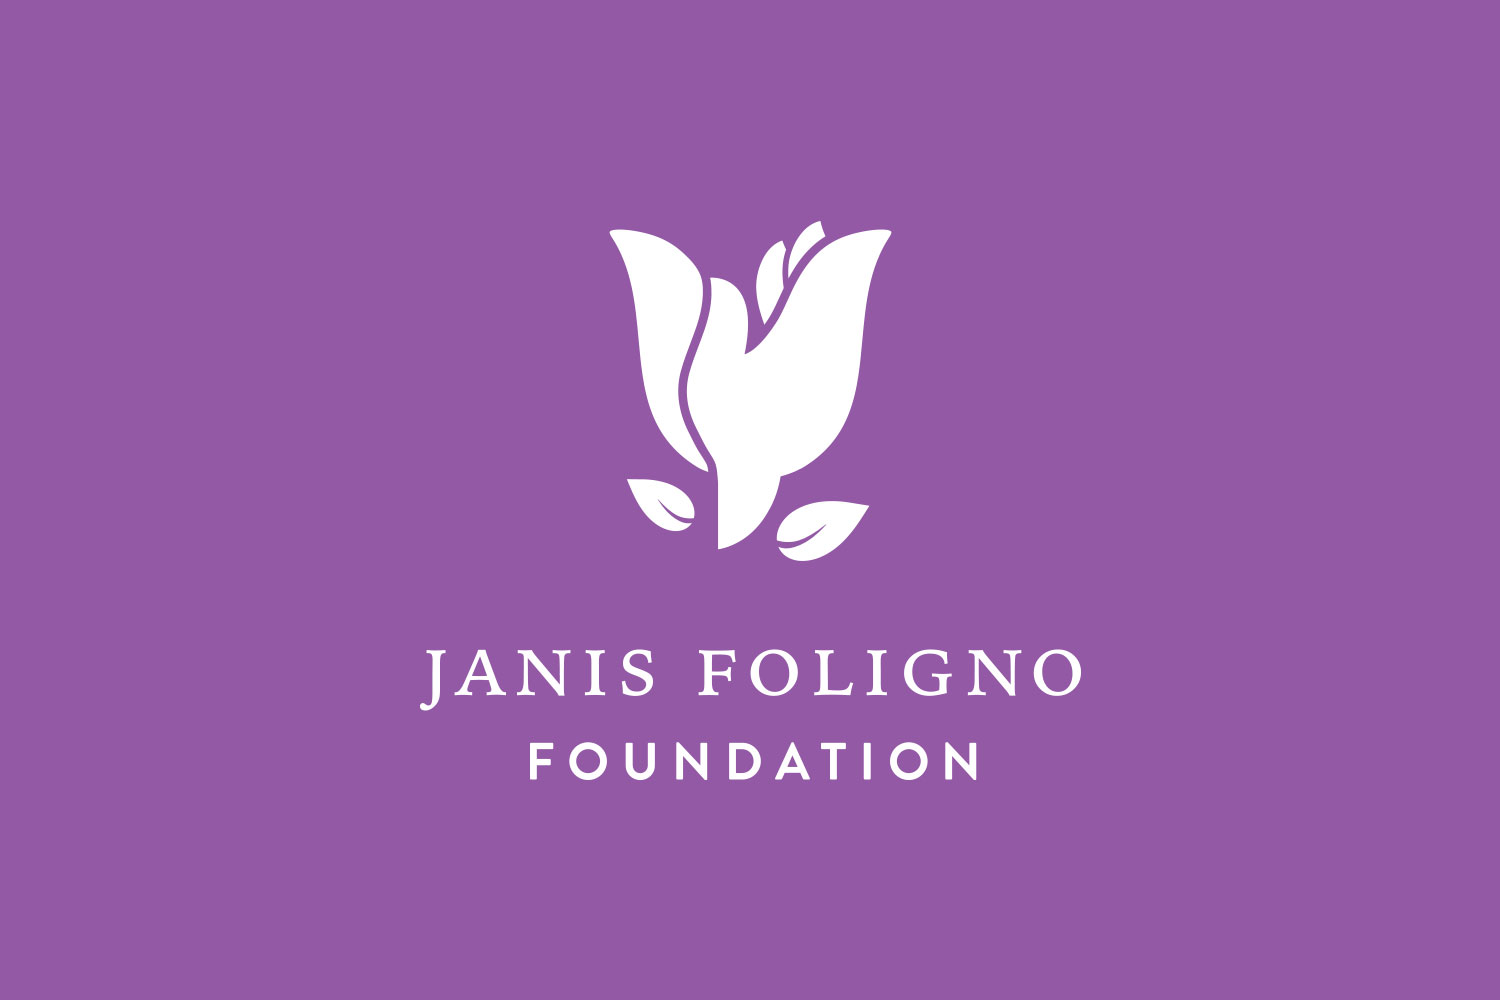 Janis Foligno Foundation